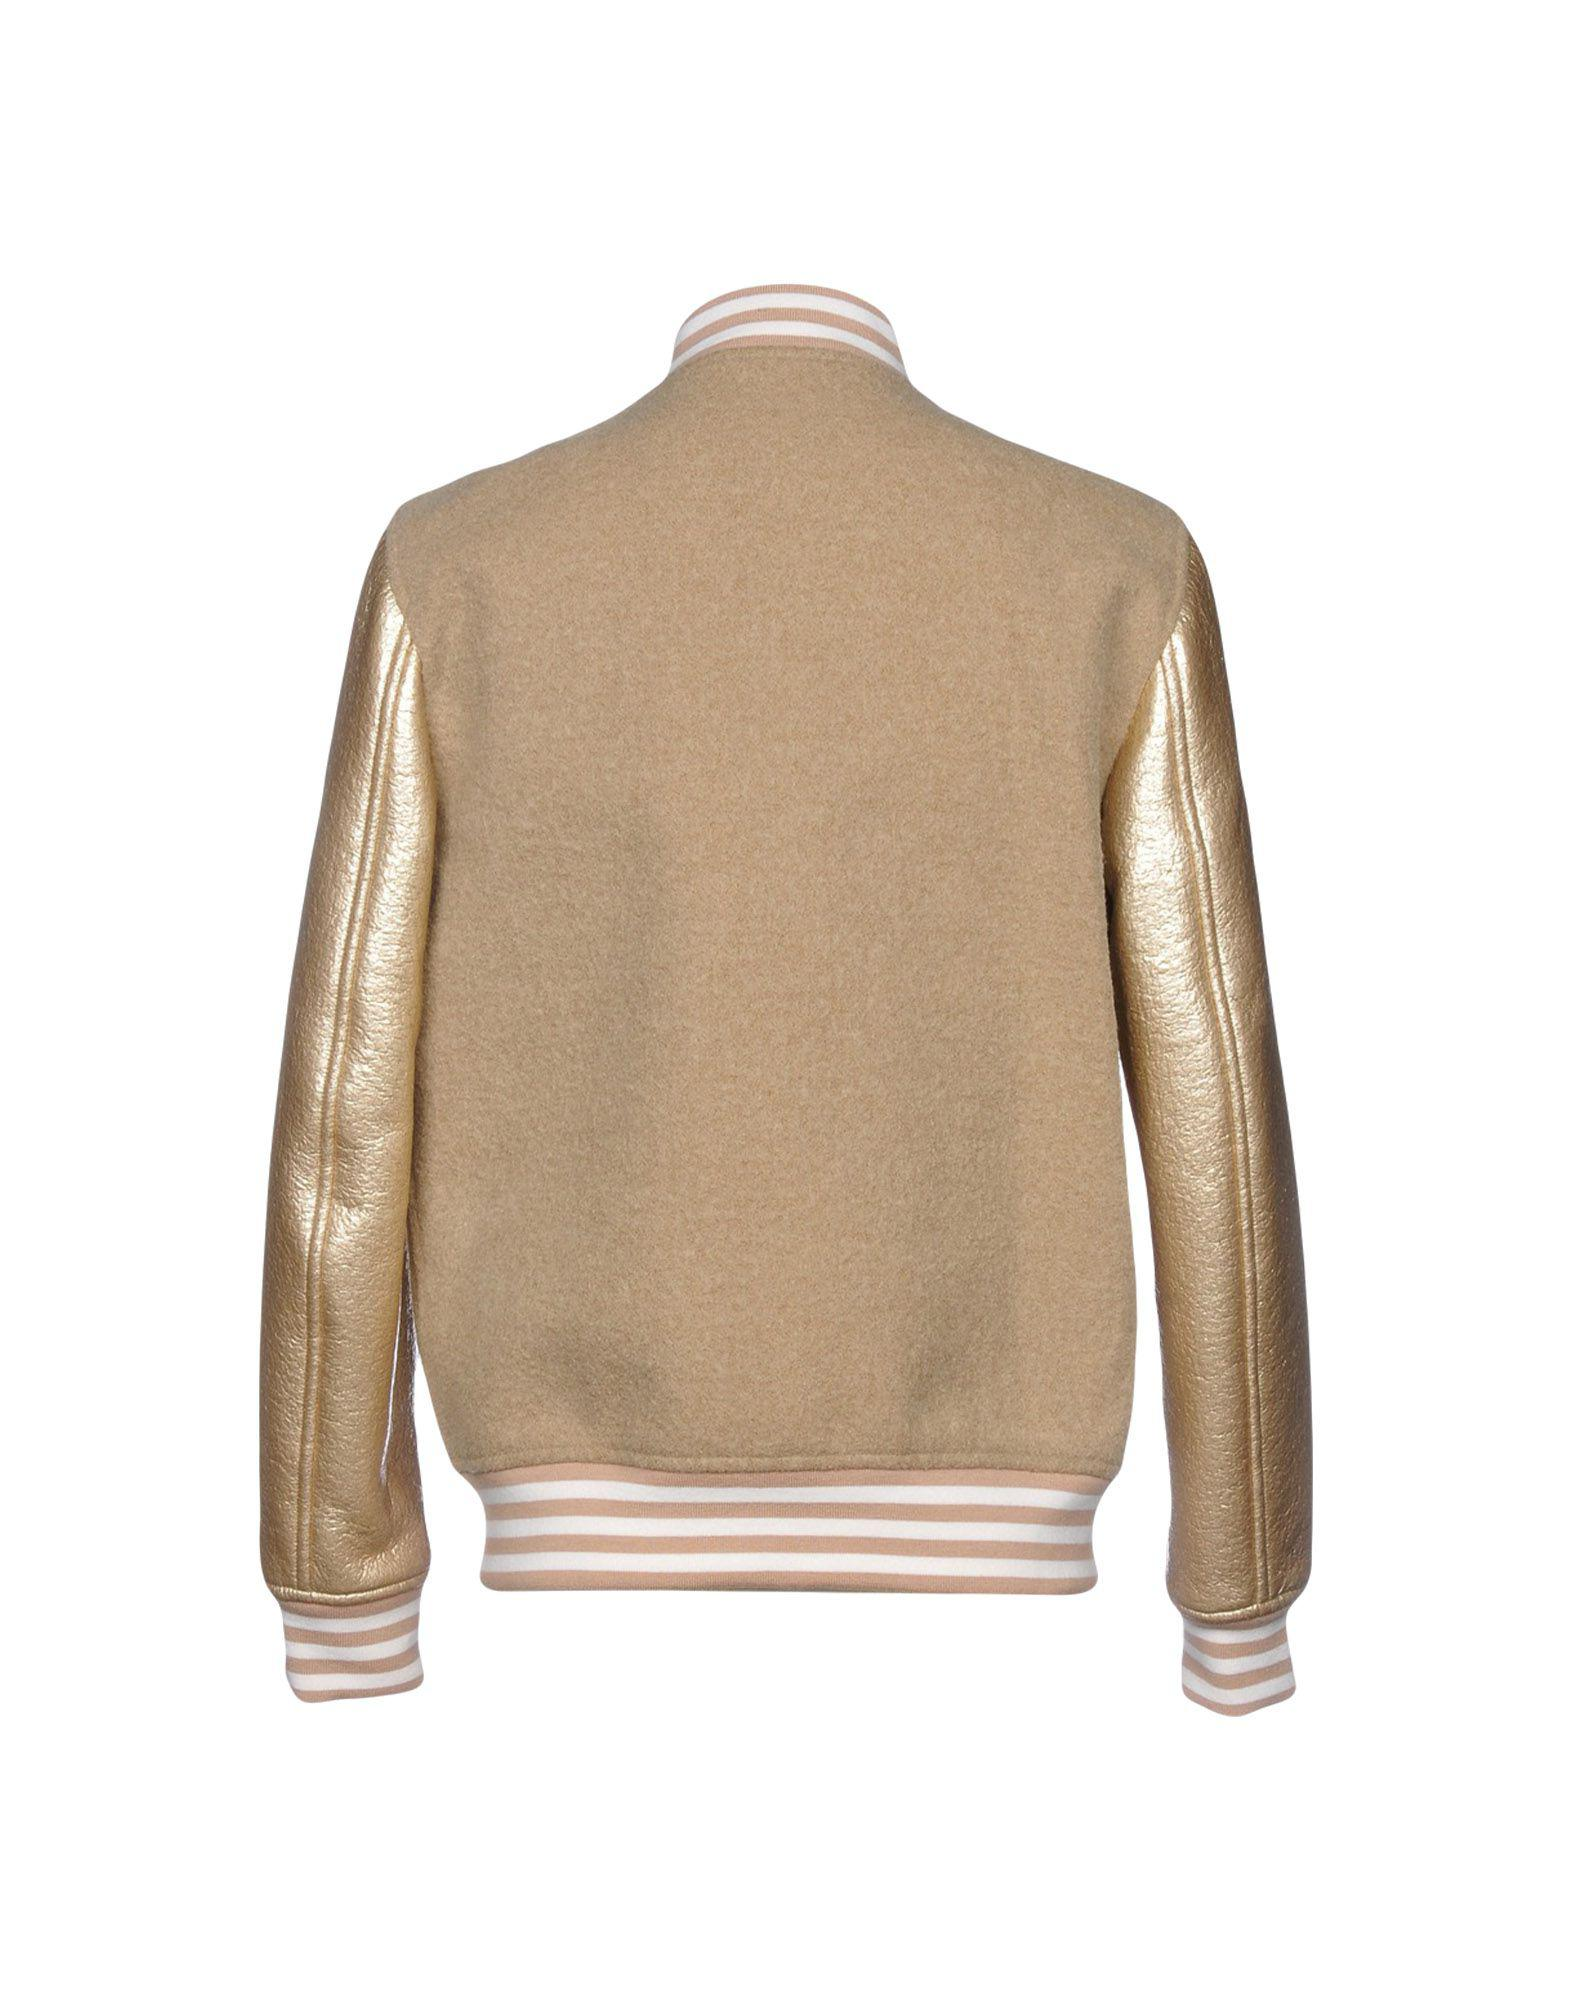 MSGM Wool Jacket in Beige (Natural) for Men